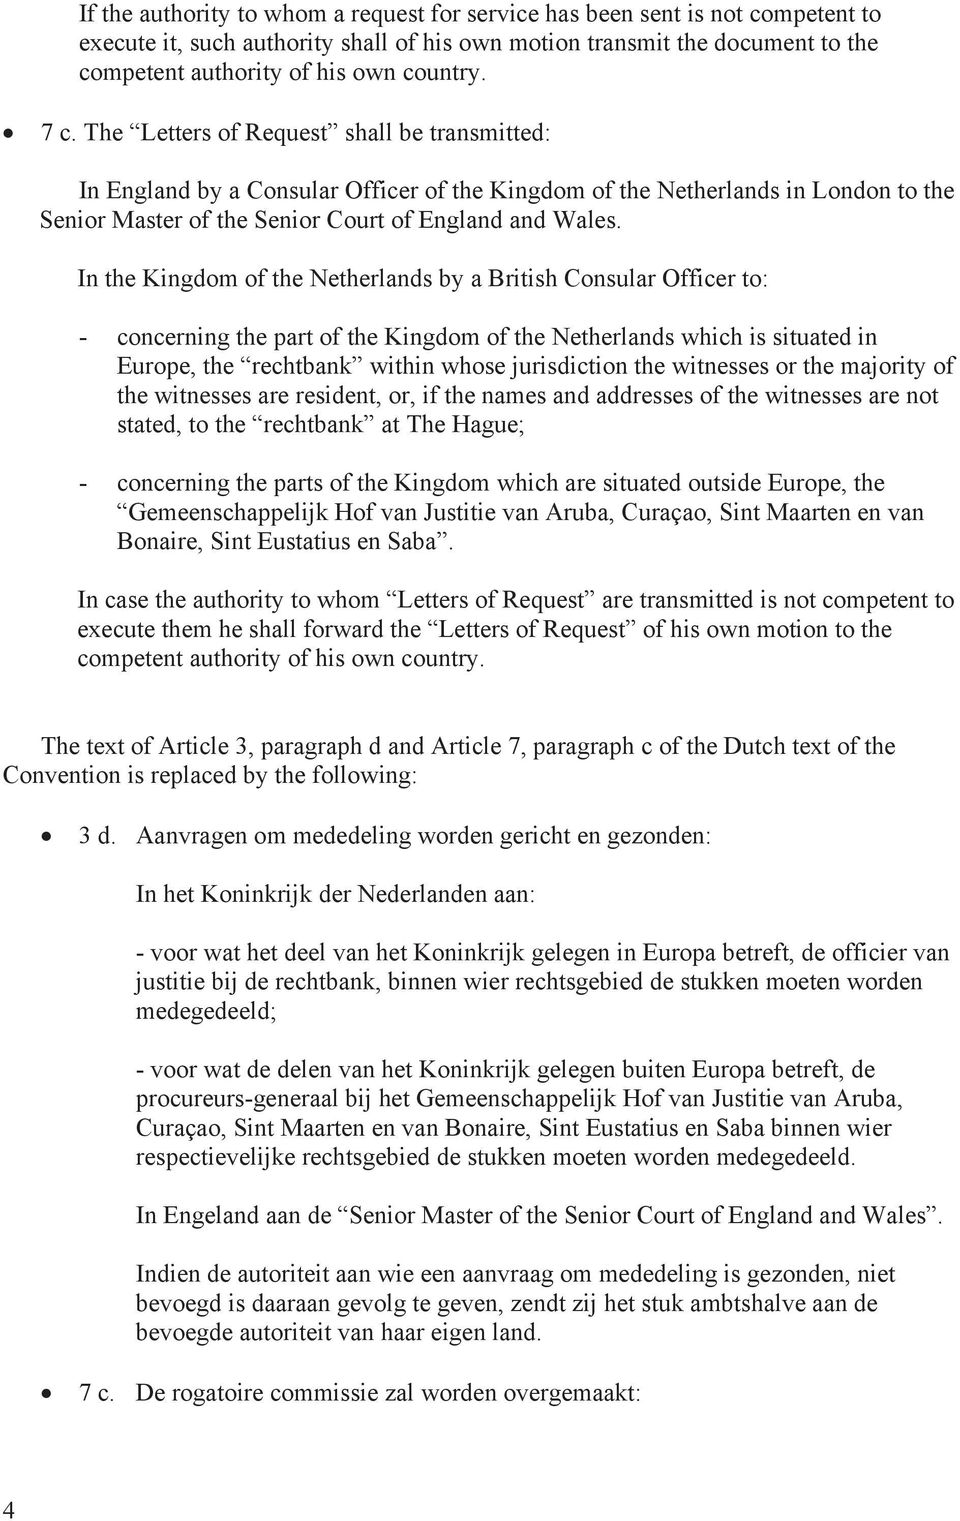 In the Kingdom of the Netherlands by a British Consular Officer to: - concerning the part of the Kingdom of the Netherlands which is situated in Europe, the rechtbank within whose jurisdiction the